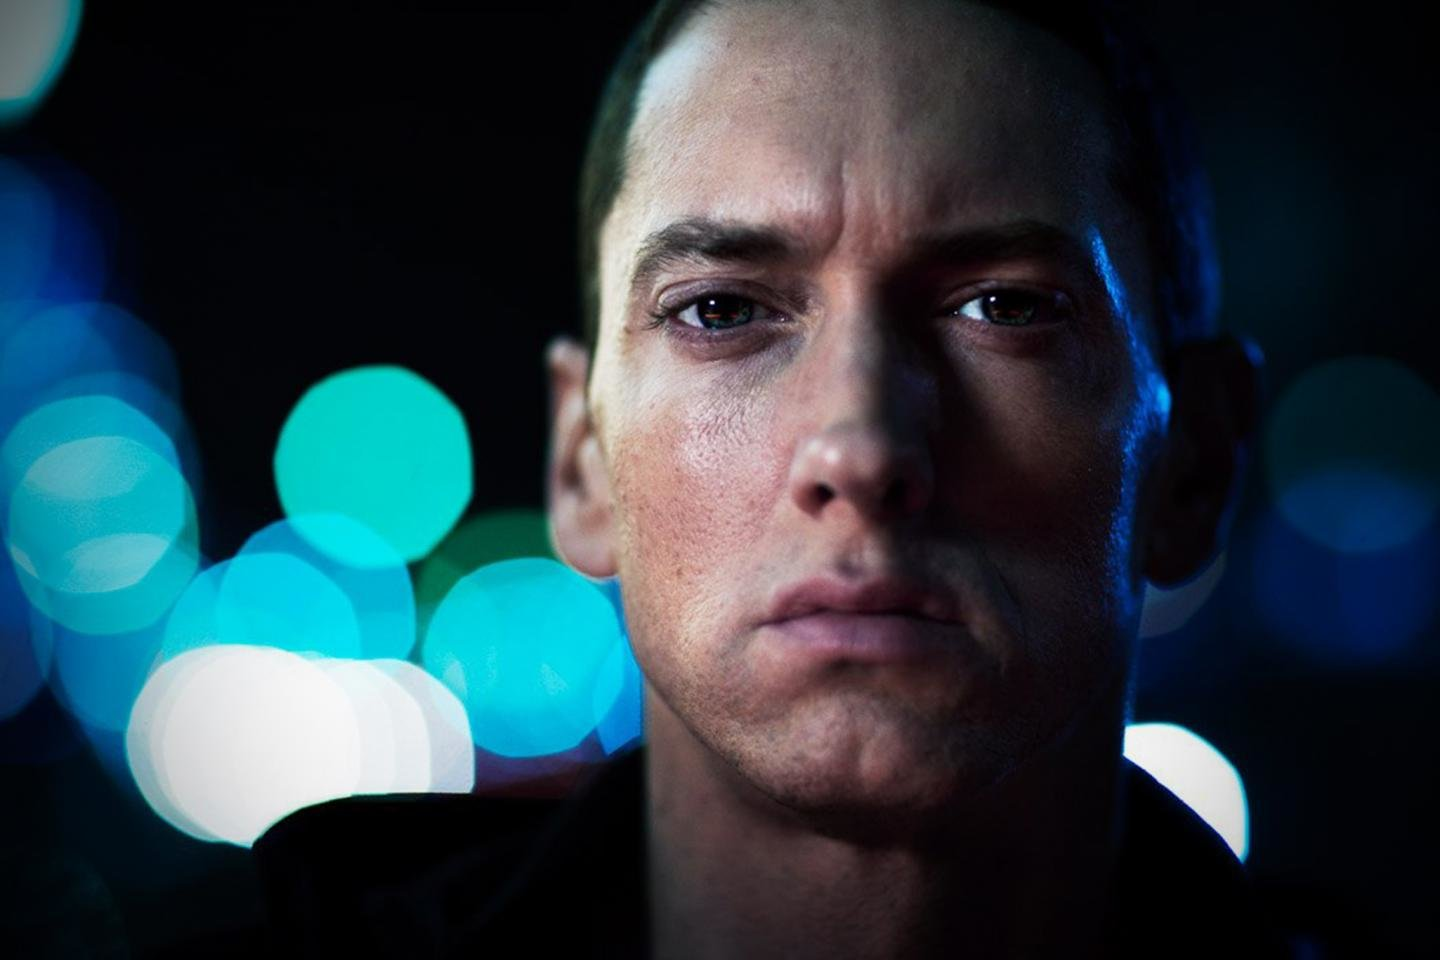 Awesome Eminem free background ID:452230 for hd 1440x960 desktop